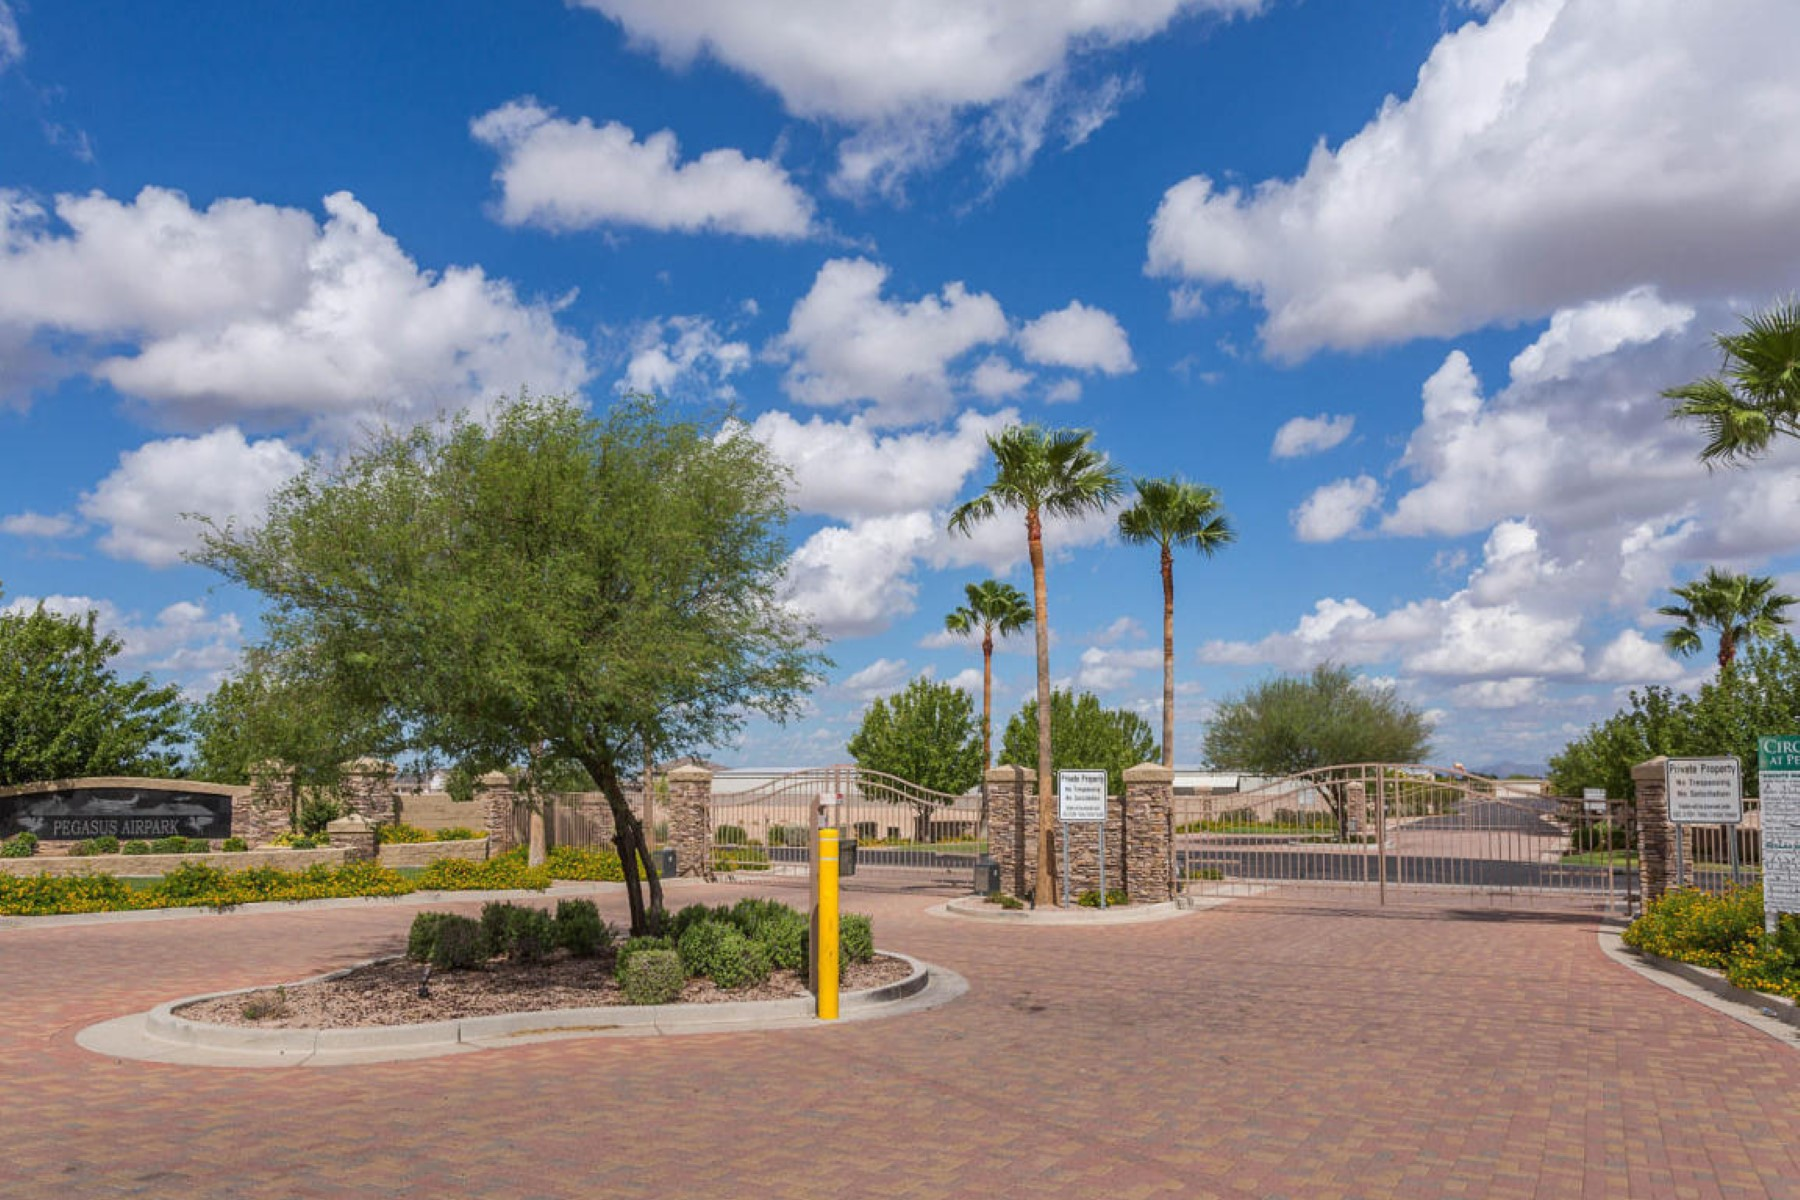 Land for Sale at Create a custom home and hangar of your dreams on this spacious 1.04 acre parcel 21962 E Stacey Rd 152 Queen Creek, Arizona 85142 United States